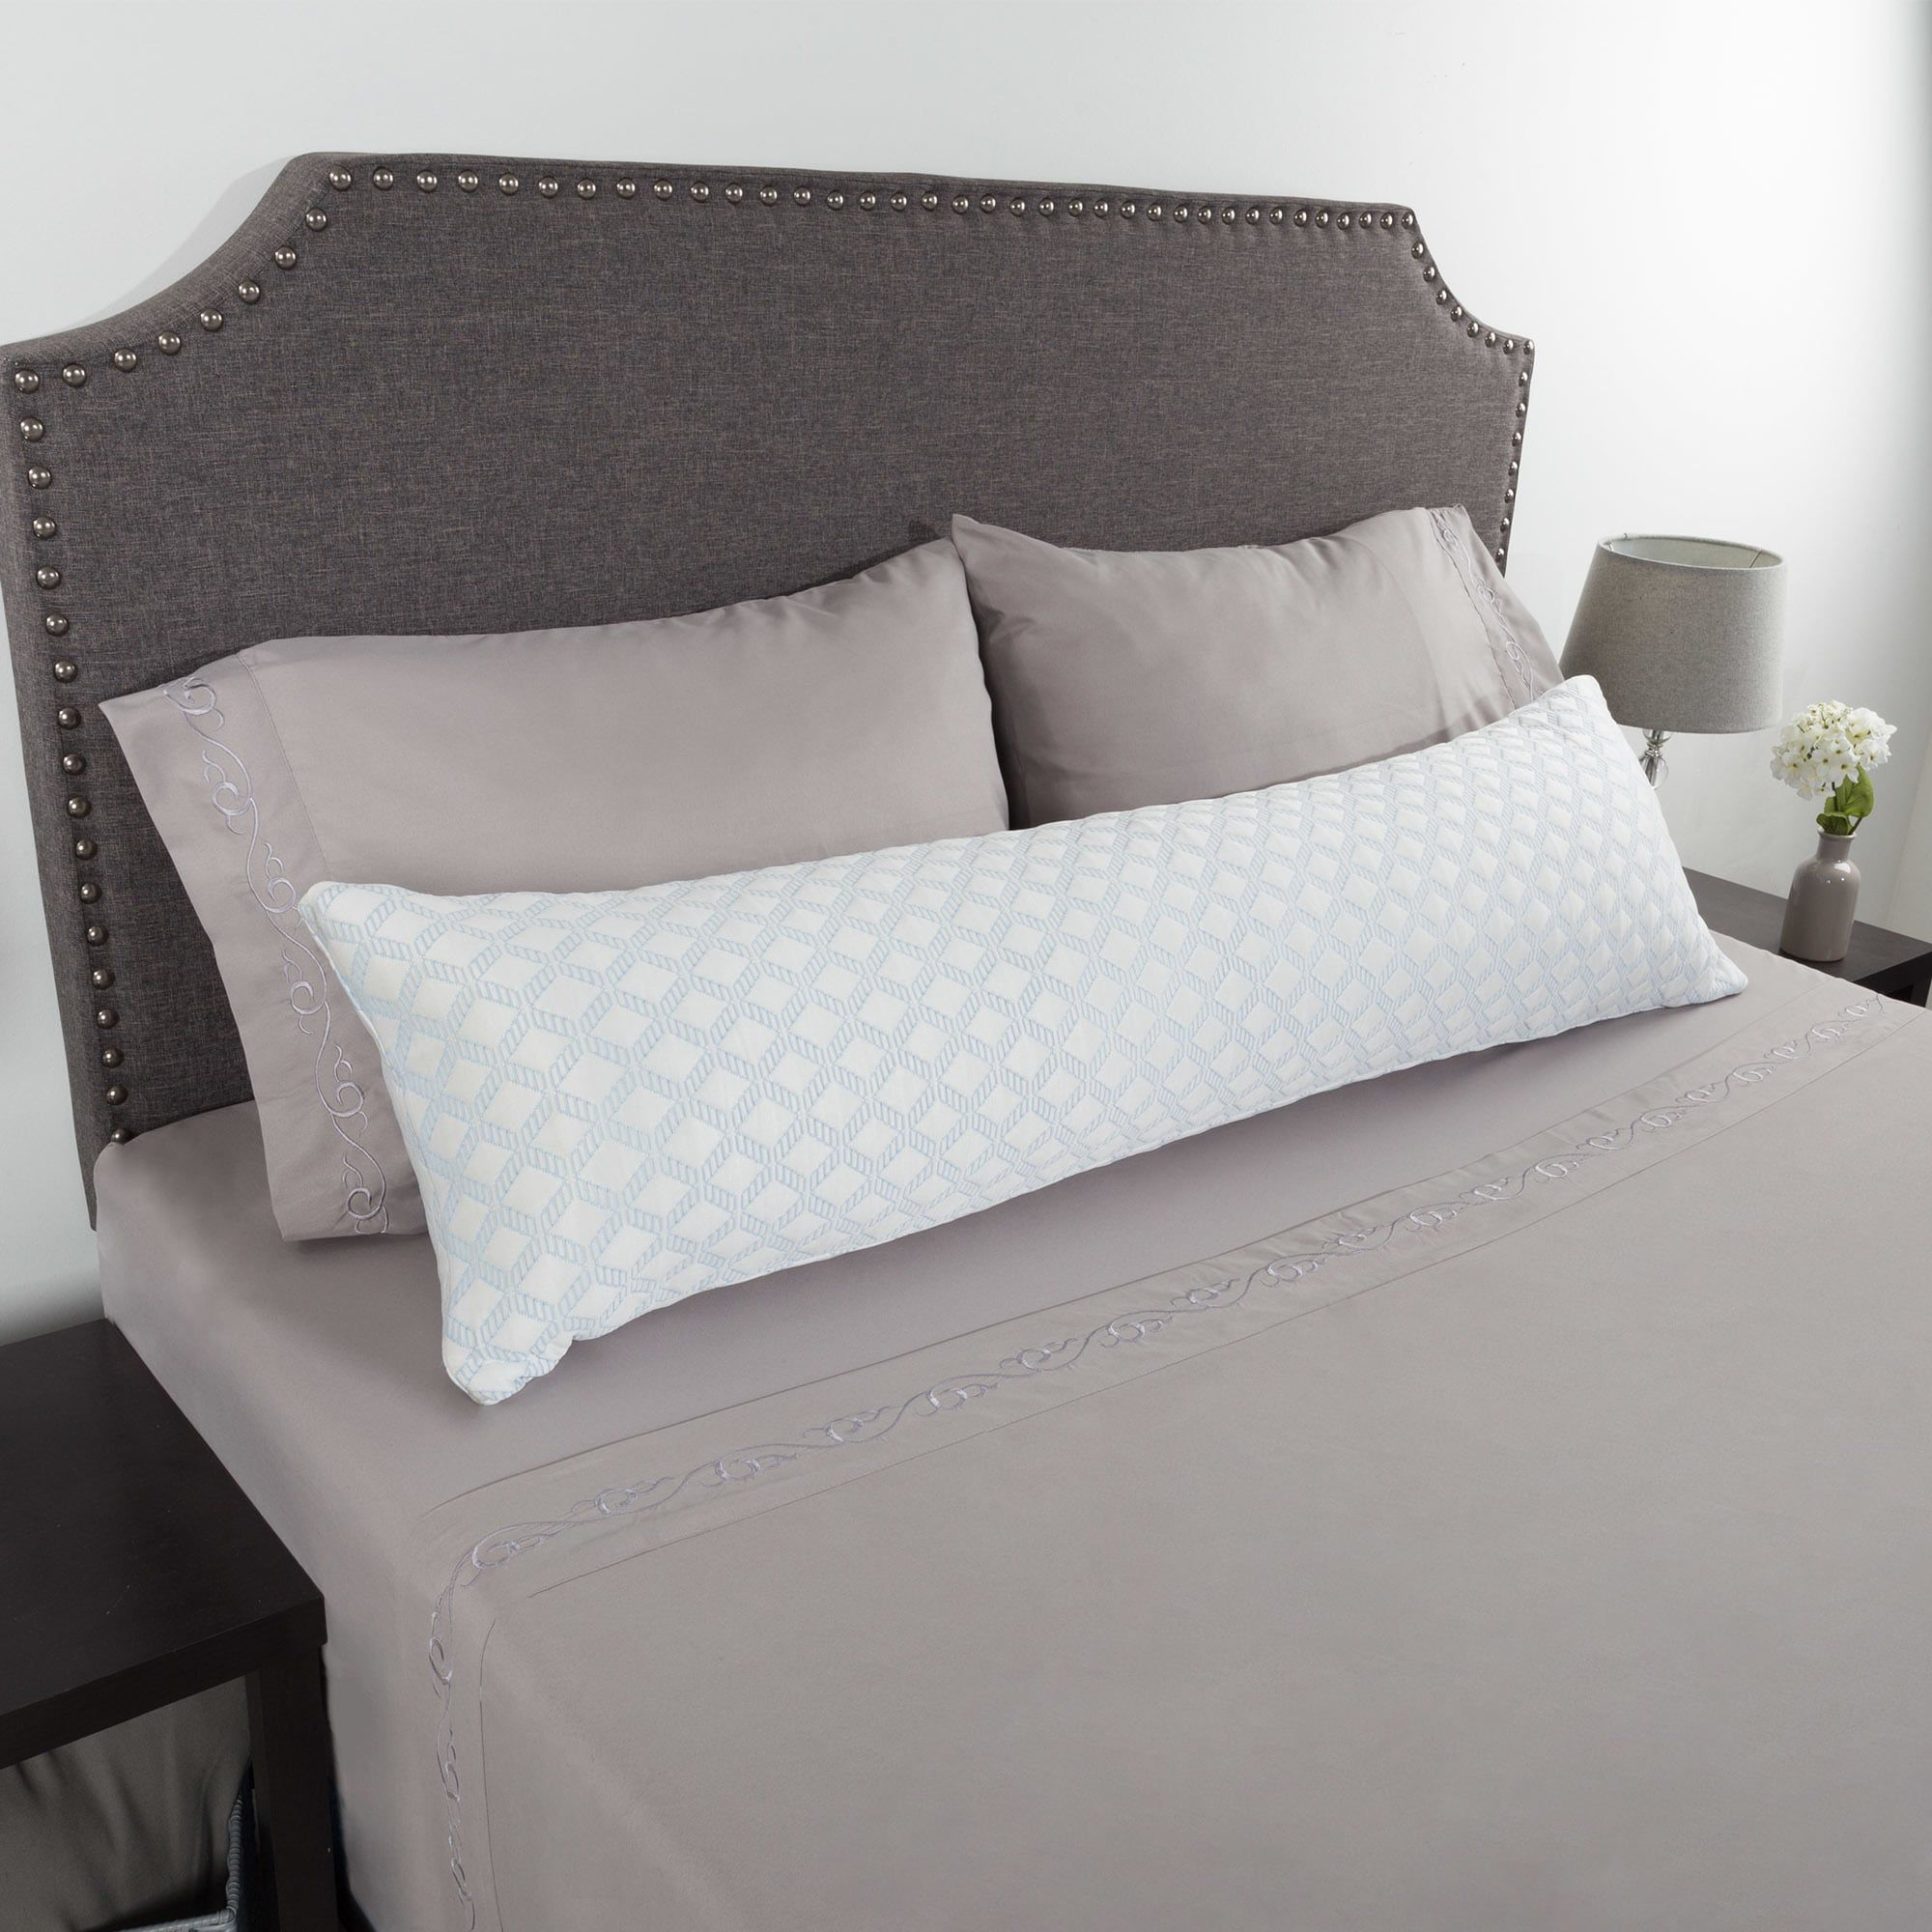 Windsor Home Memory Foam Body Pillow With Stay Cool Cover Memory